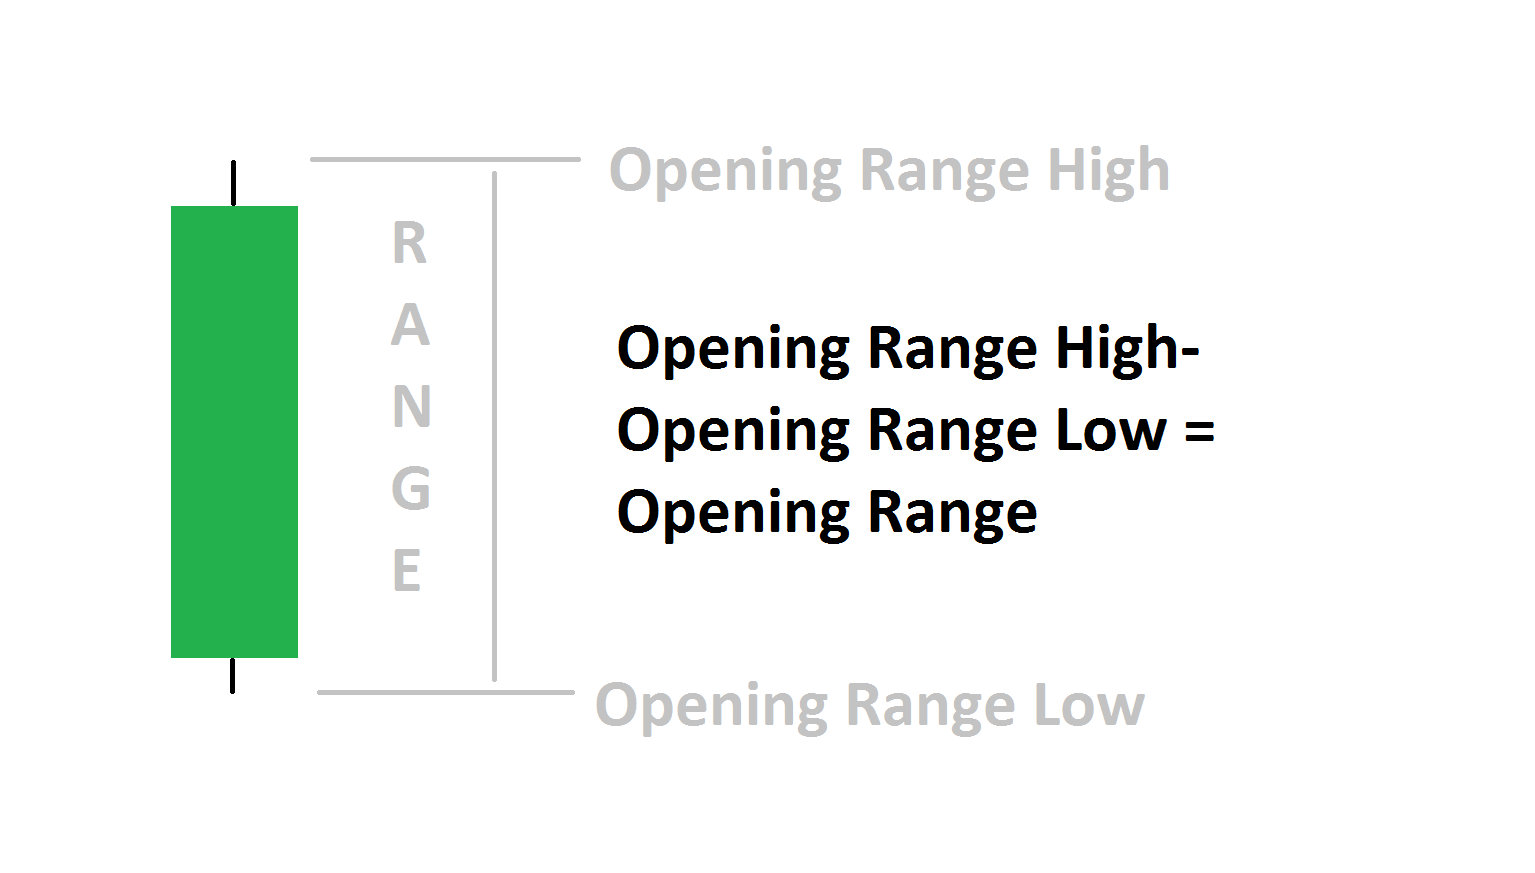 How To Calculate The Opening Range